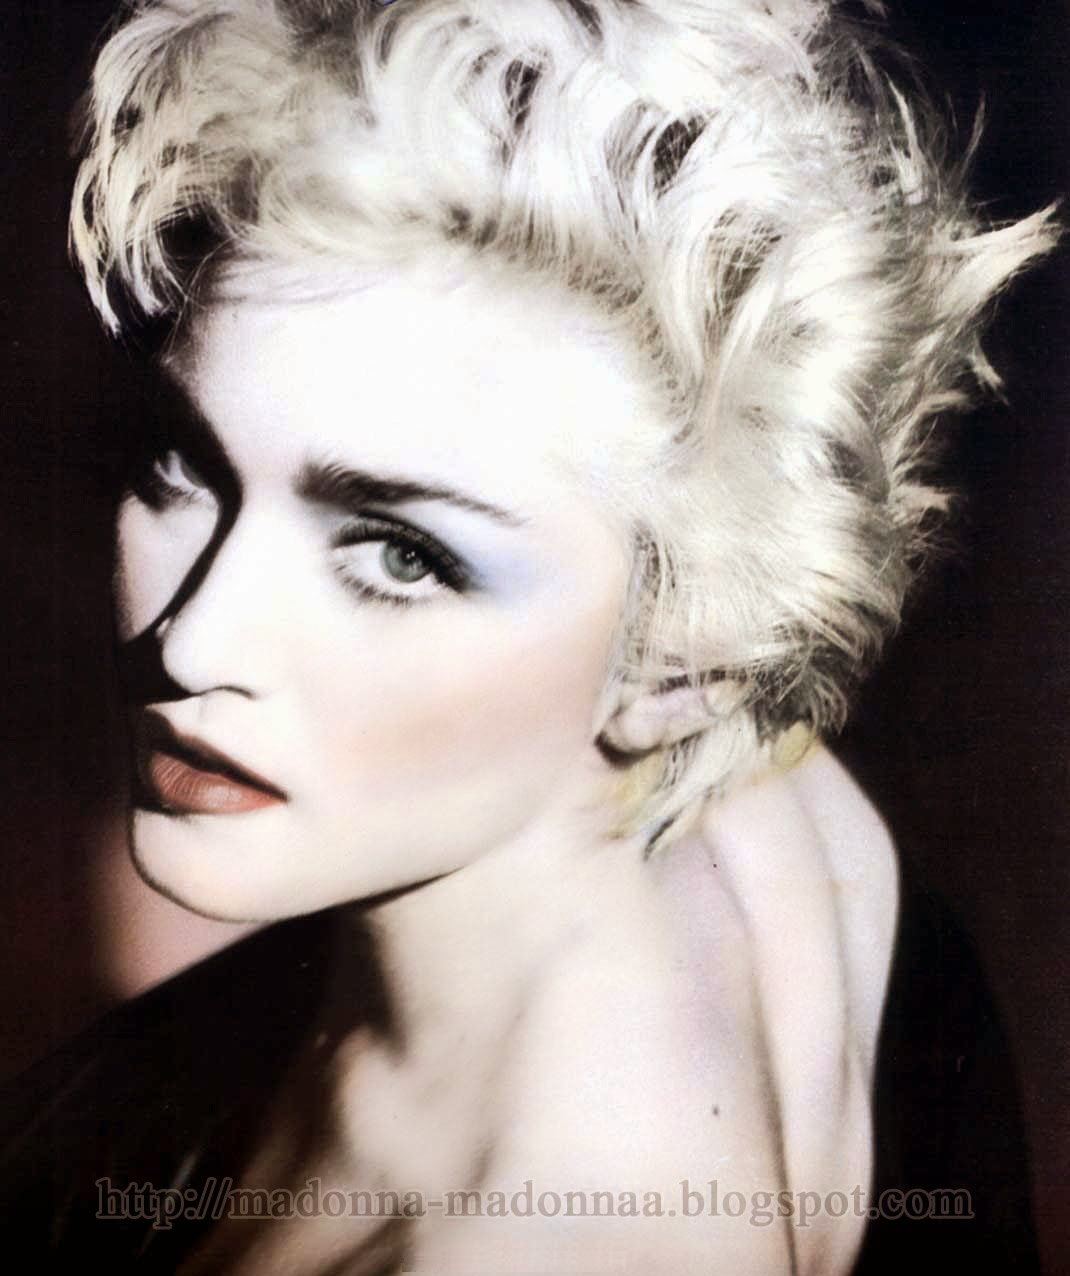 Madonna In The 80s - Madonna